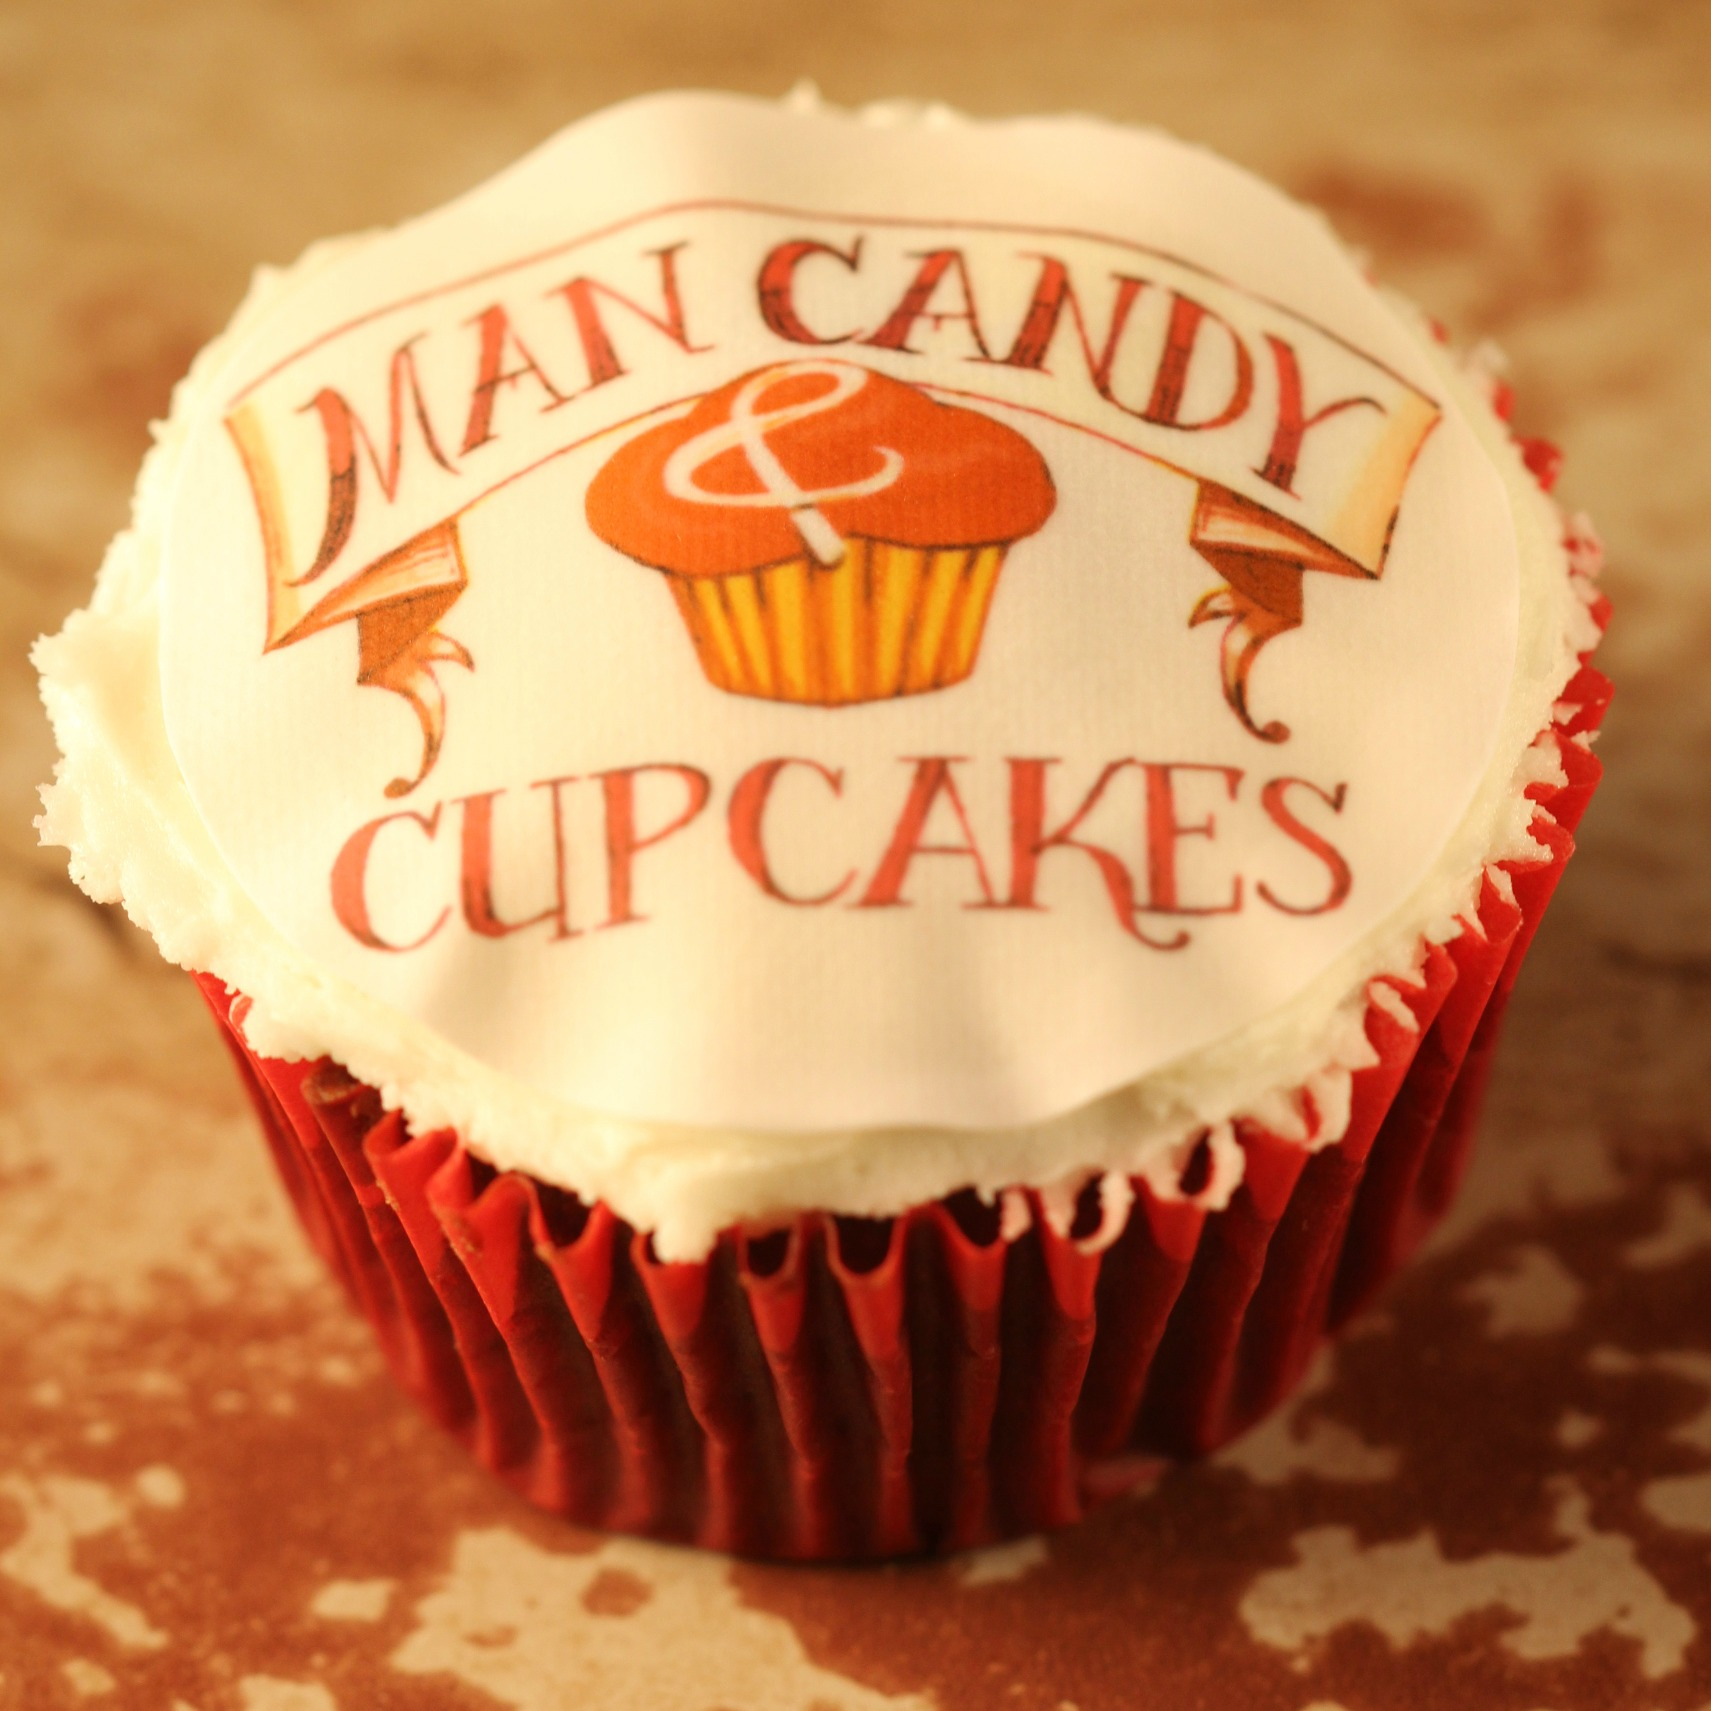 Man Candy & Cupcakes Topper